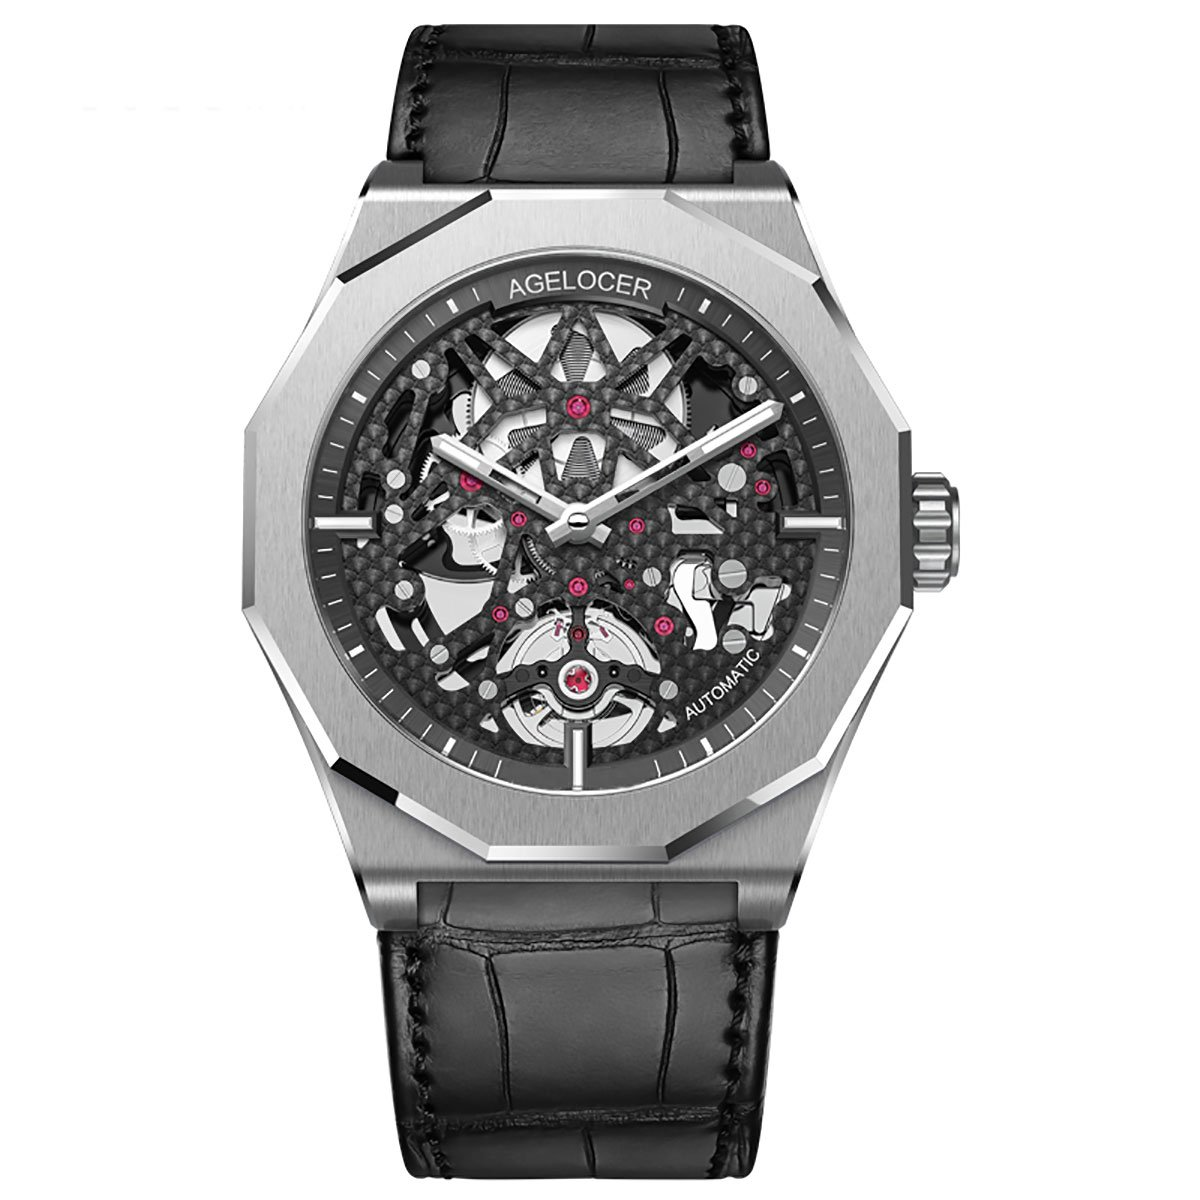 Agelocer Skeleton Diver Watch, Automatic Watch, Silver Watch, Skeleton Watches